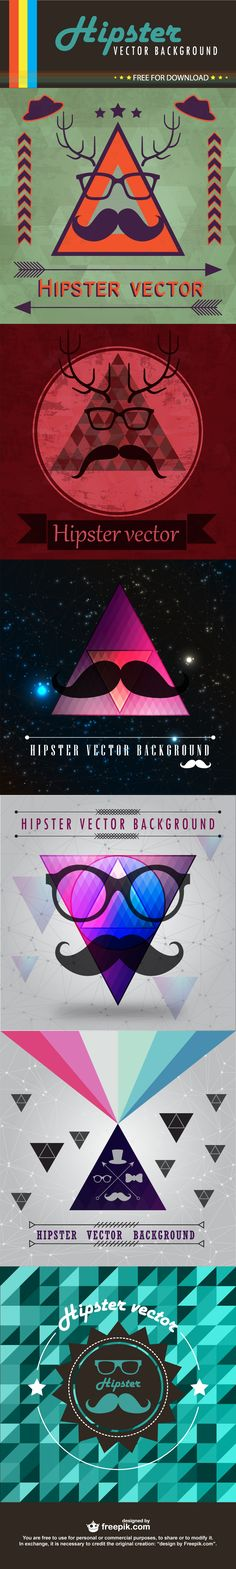 fun freebies hipster vector backgrounds from freepik download illustrated hipster backgrounds